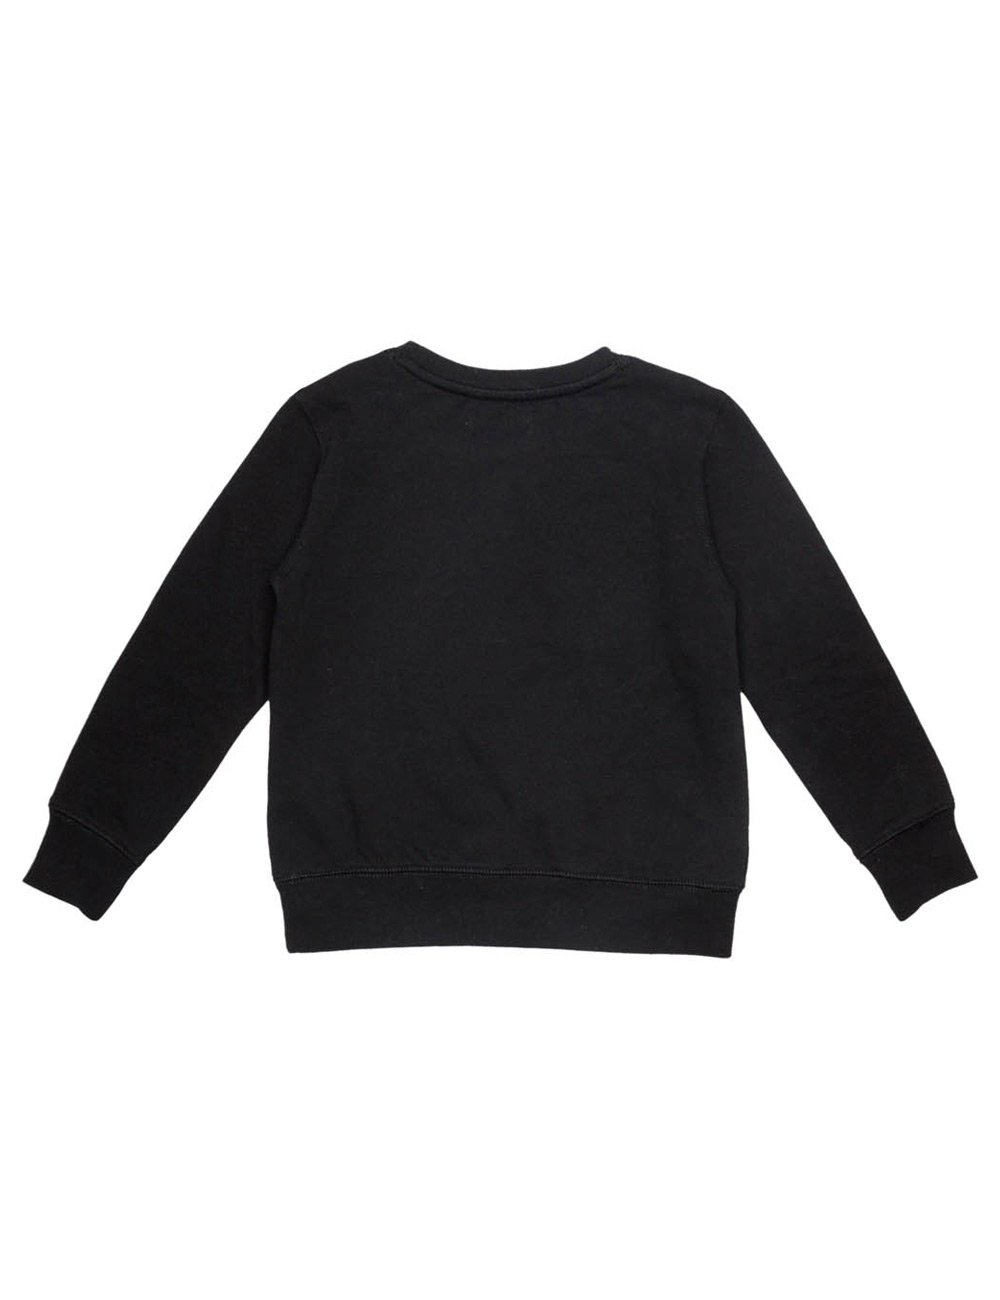 REPLAY Girls Black Sweater With Print and Faux Fur Detail In Size 8 Years Black